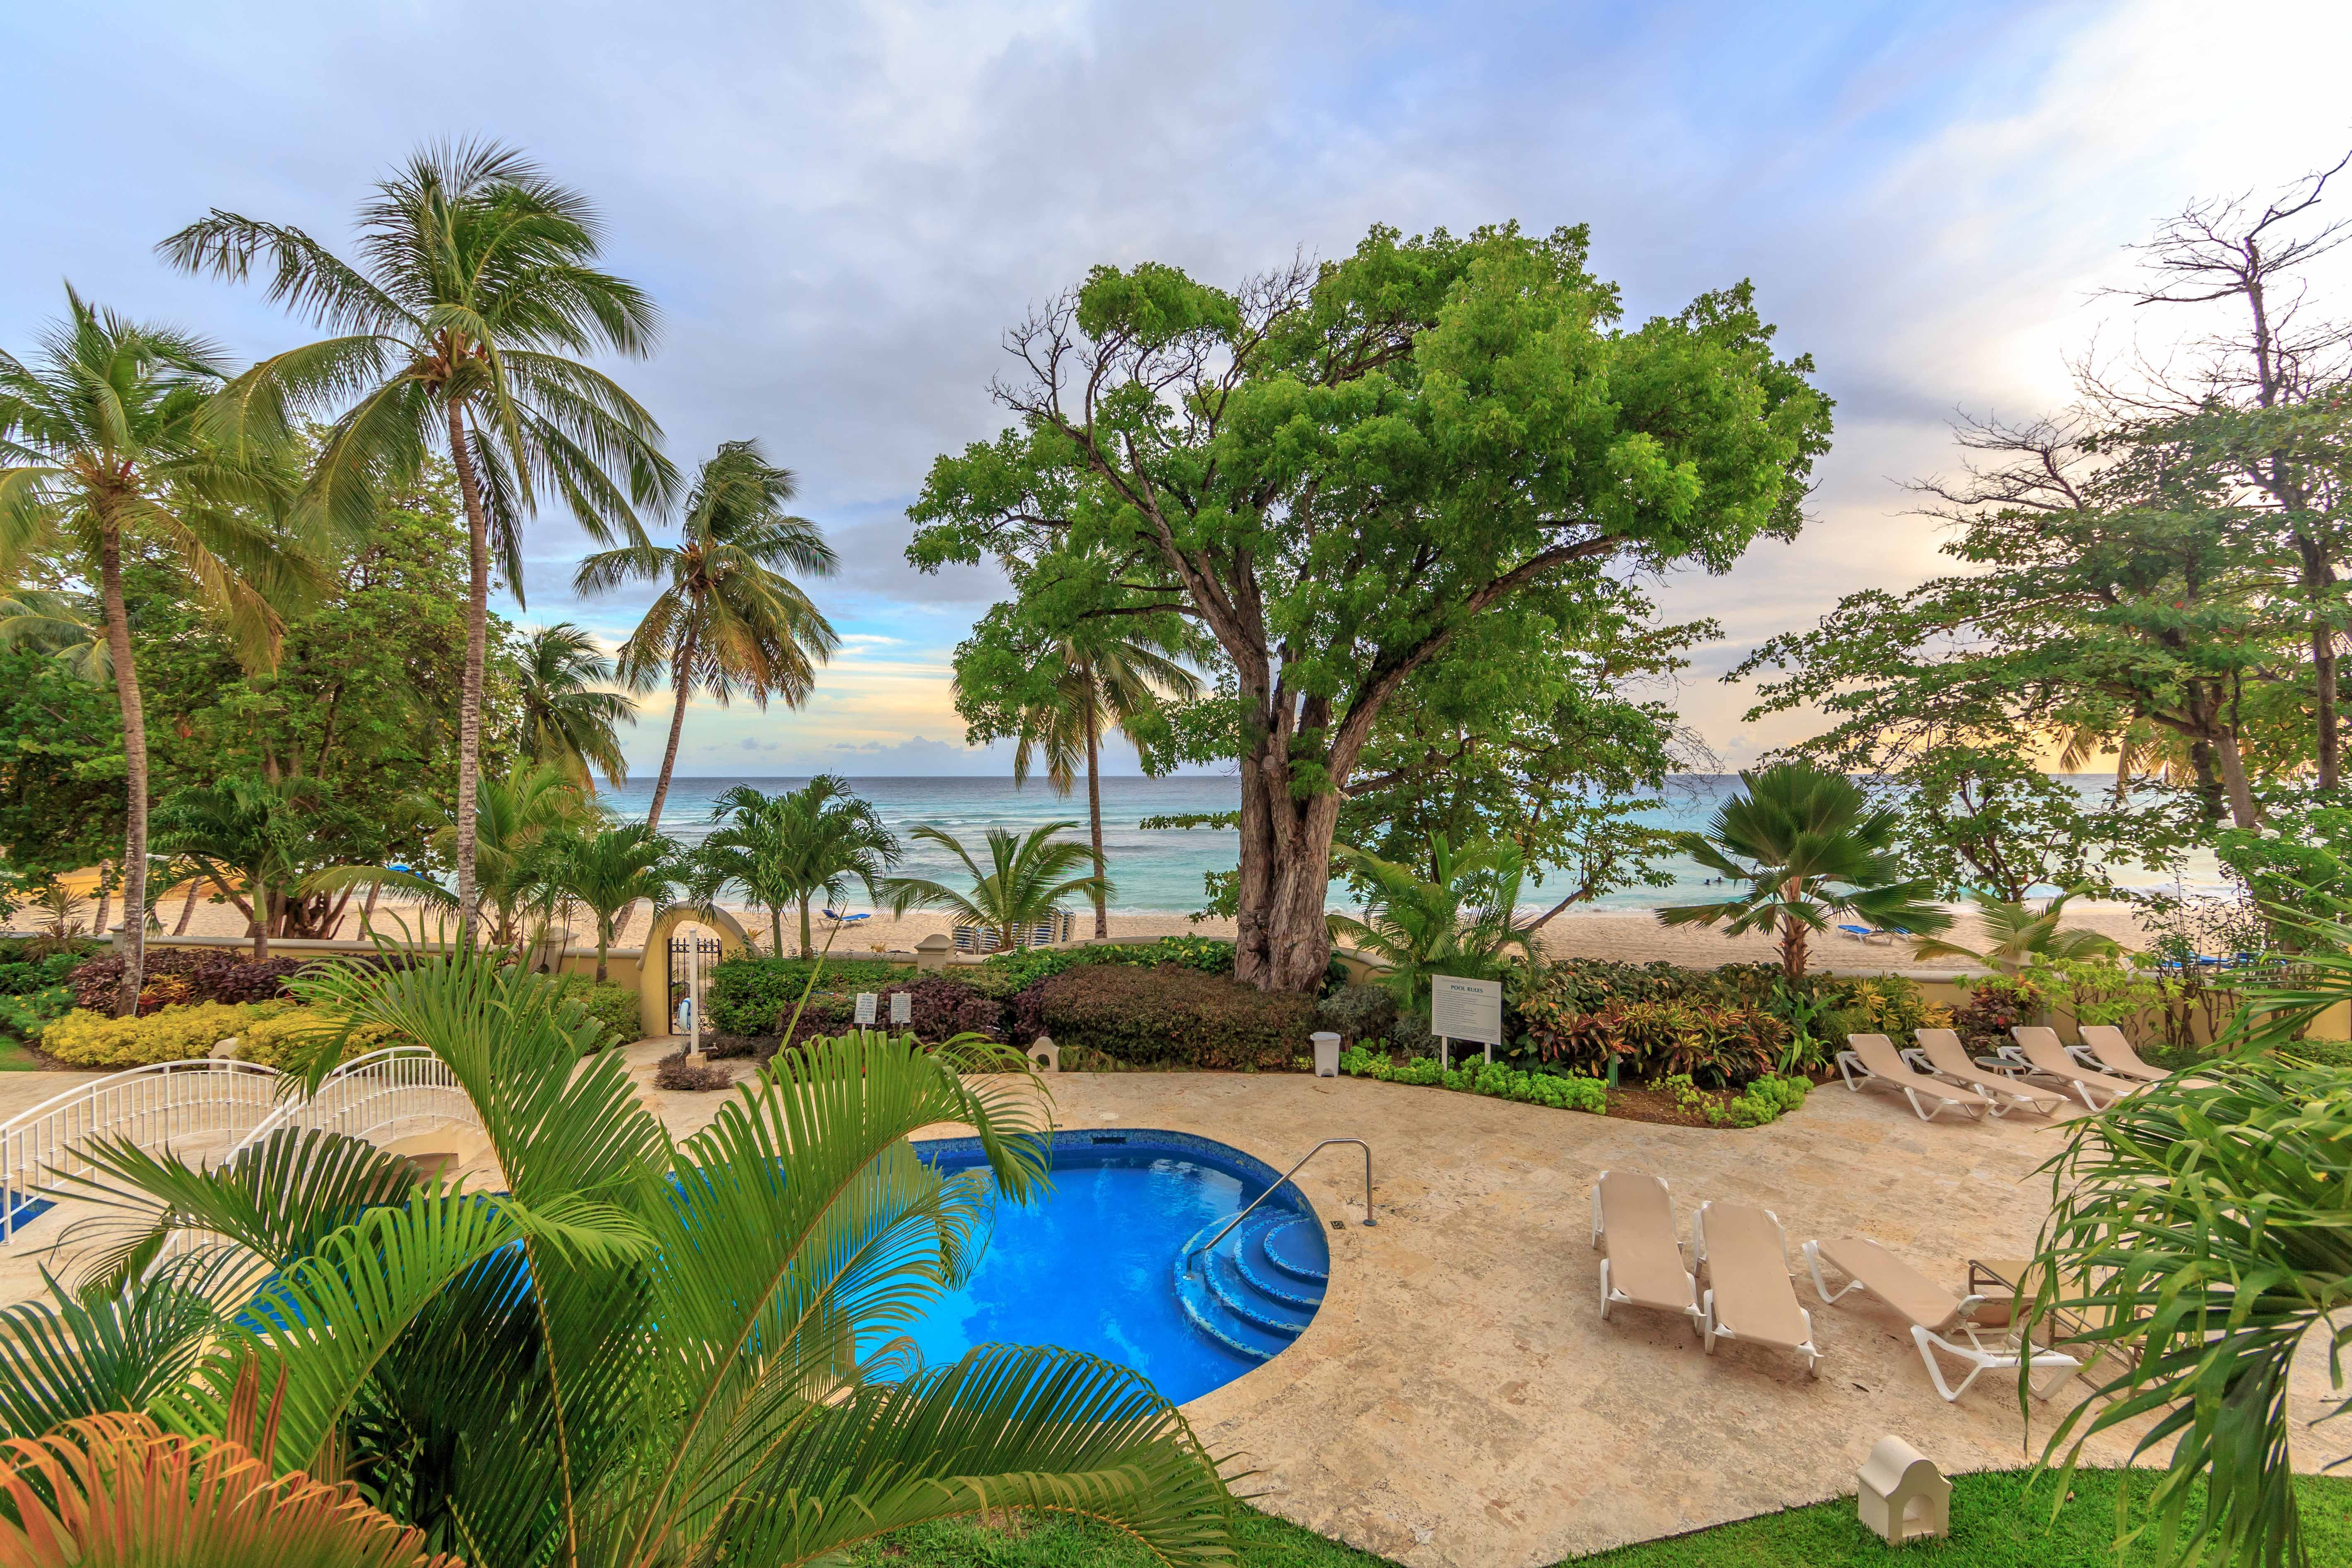 Sapphire Beach Unit 111 (Duplex) - Upstairs Patio View - Located in ...